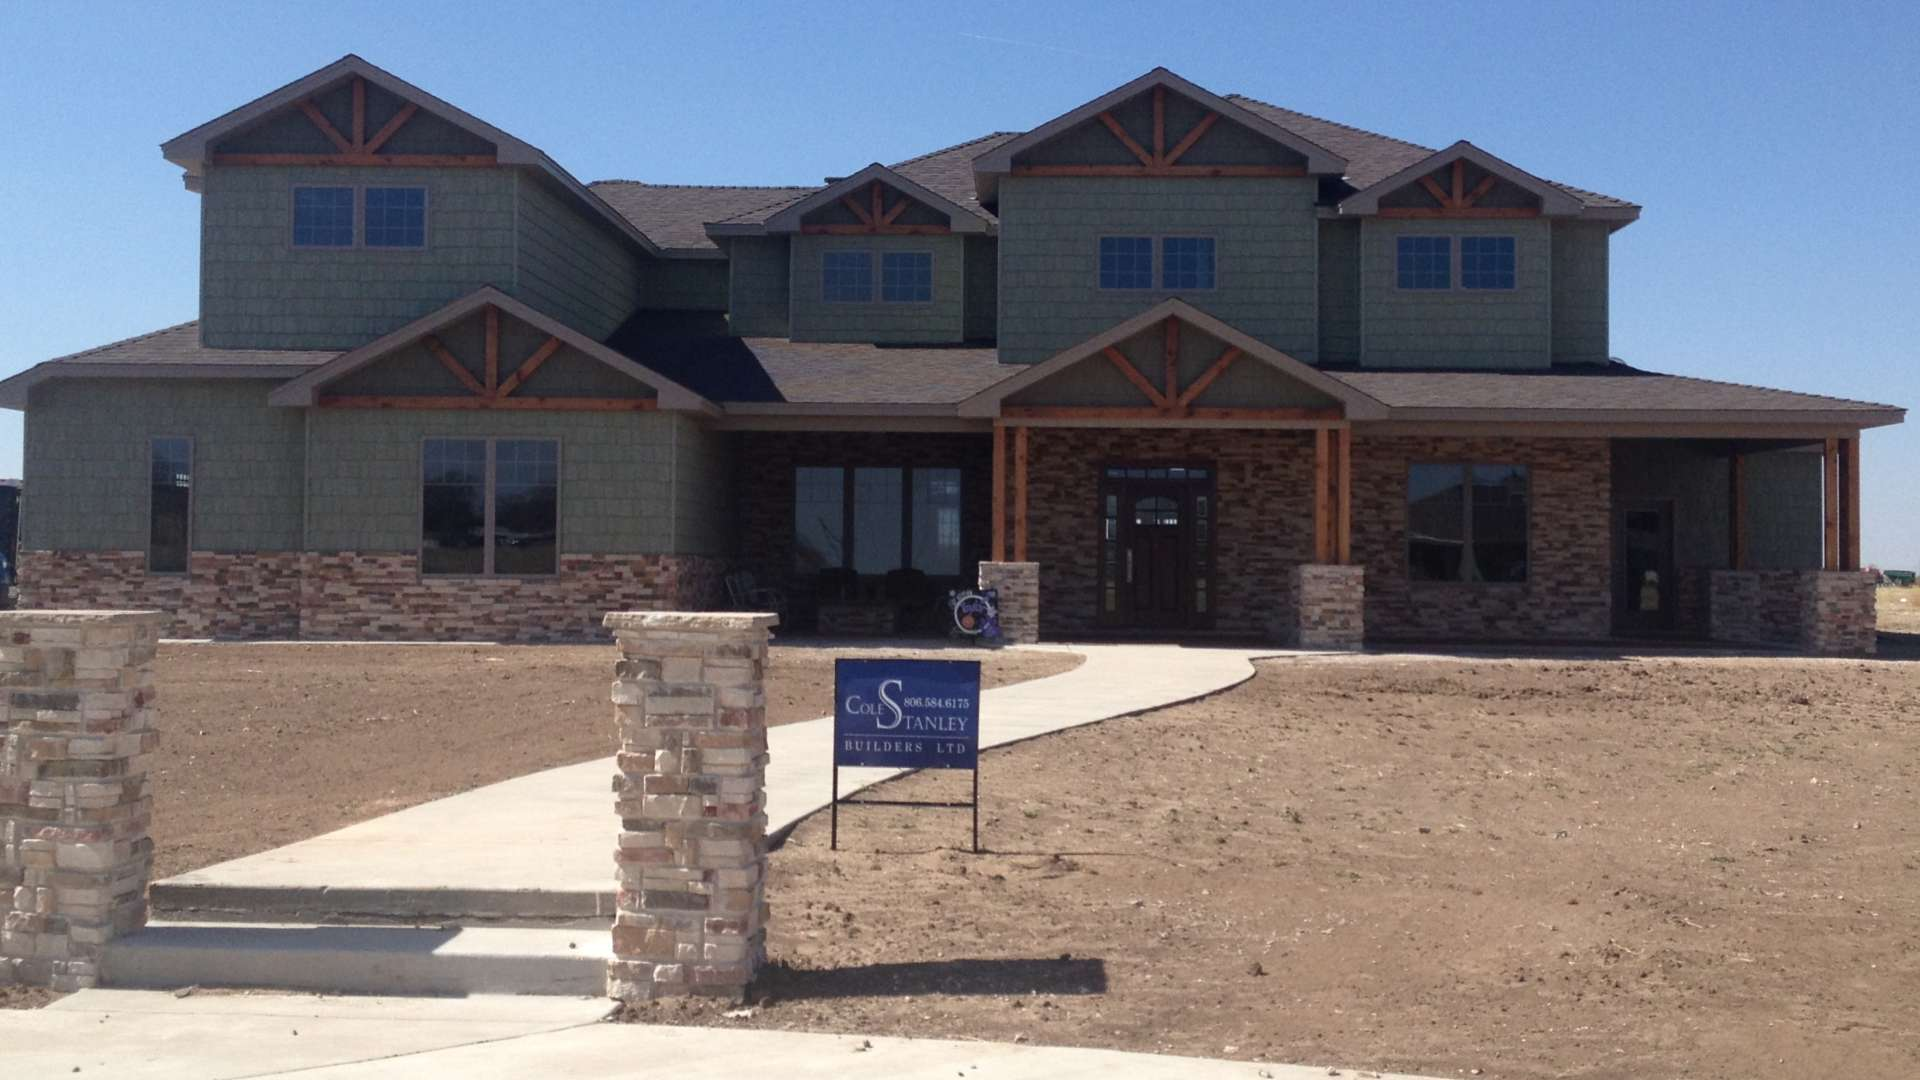 Cole Stanley Builders LTD new amarillo home